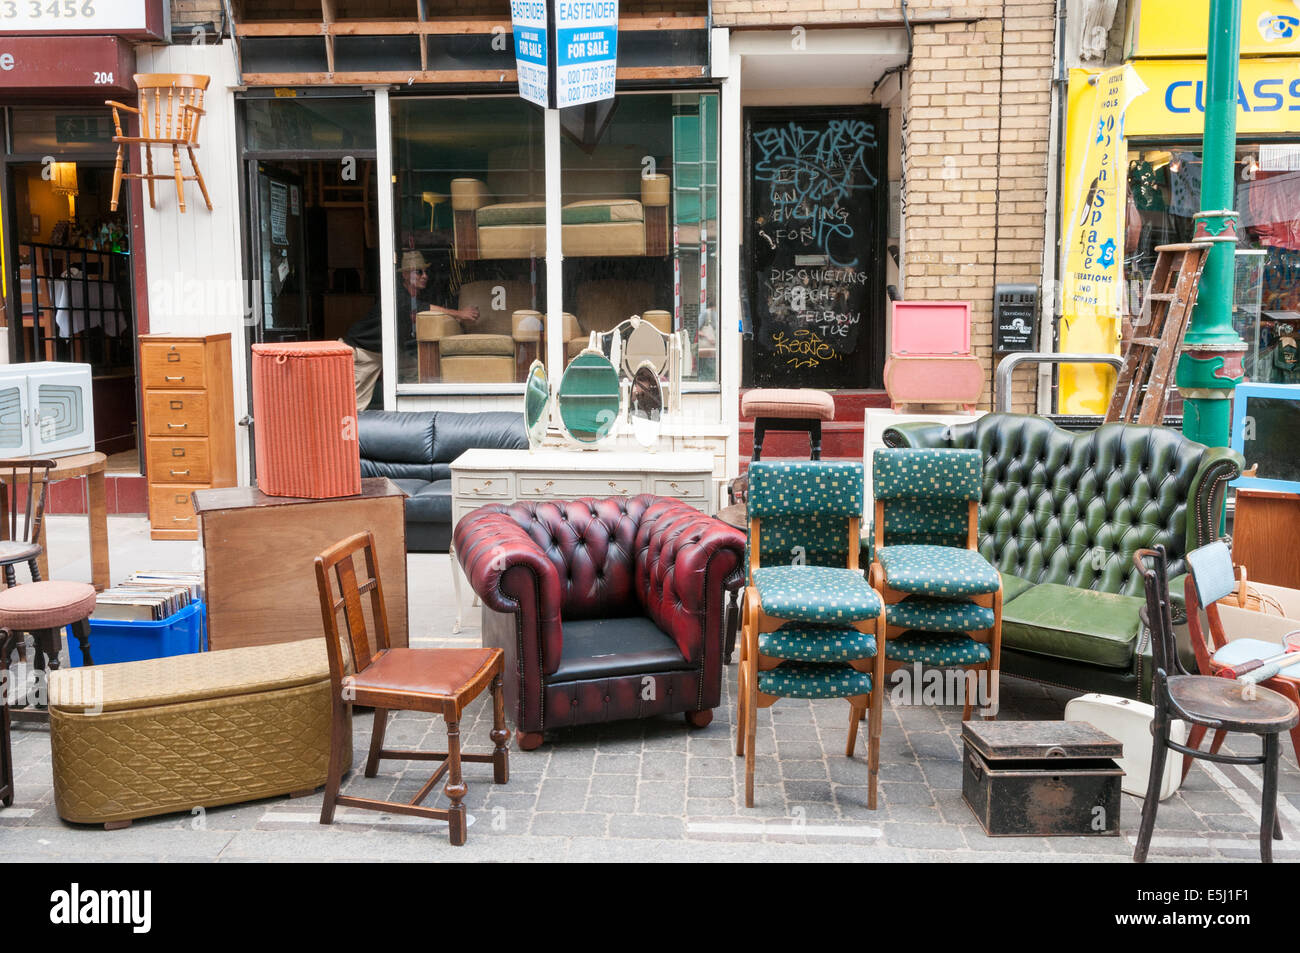 Second hand used furniture for sale on Brick Lane, Tower Hamlets, London,  England, UK